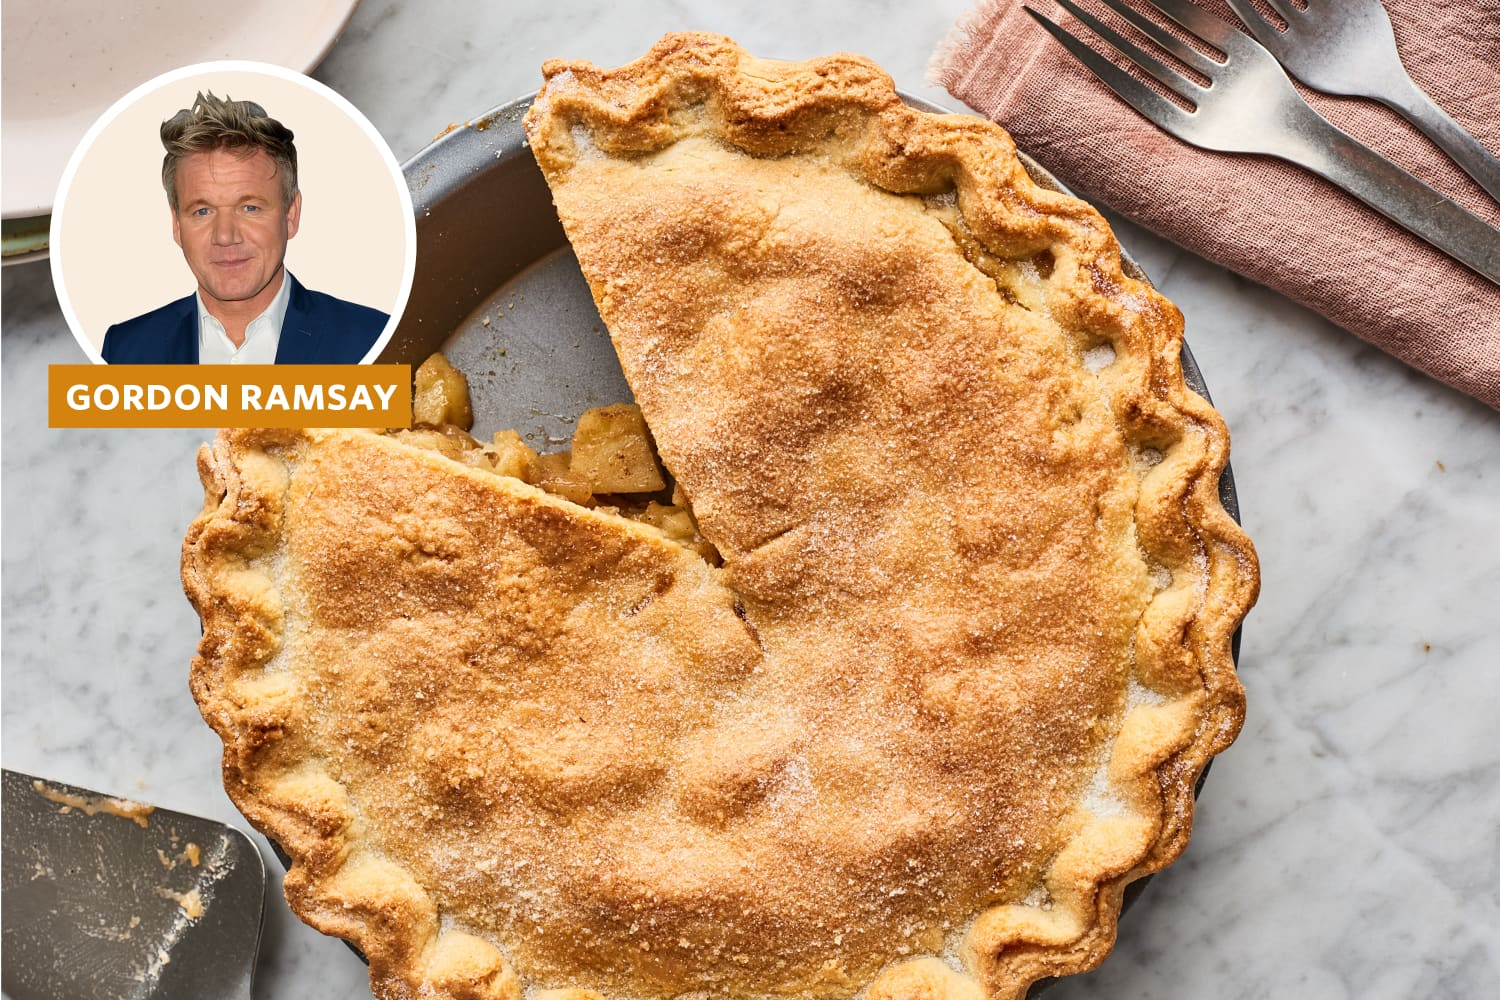 Gordon Ramsay's Apple Pie Recipe Is Like Nothing You've Seen Before